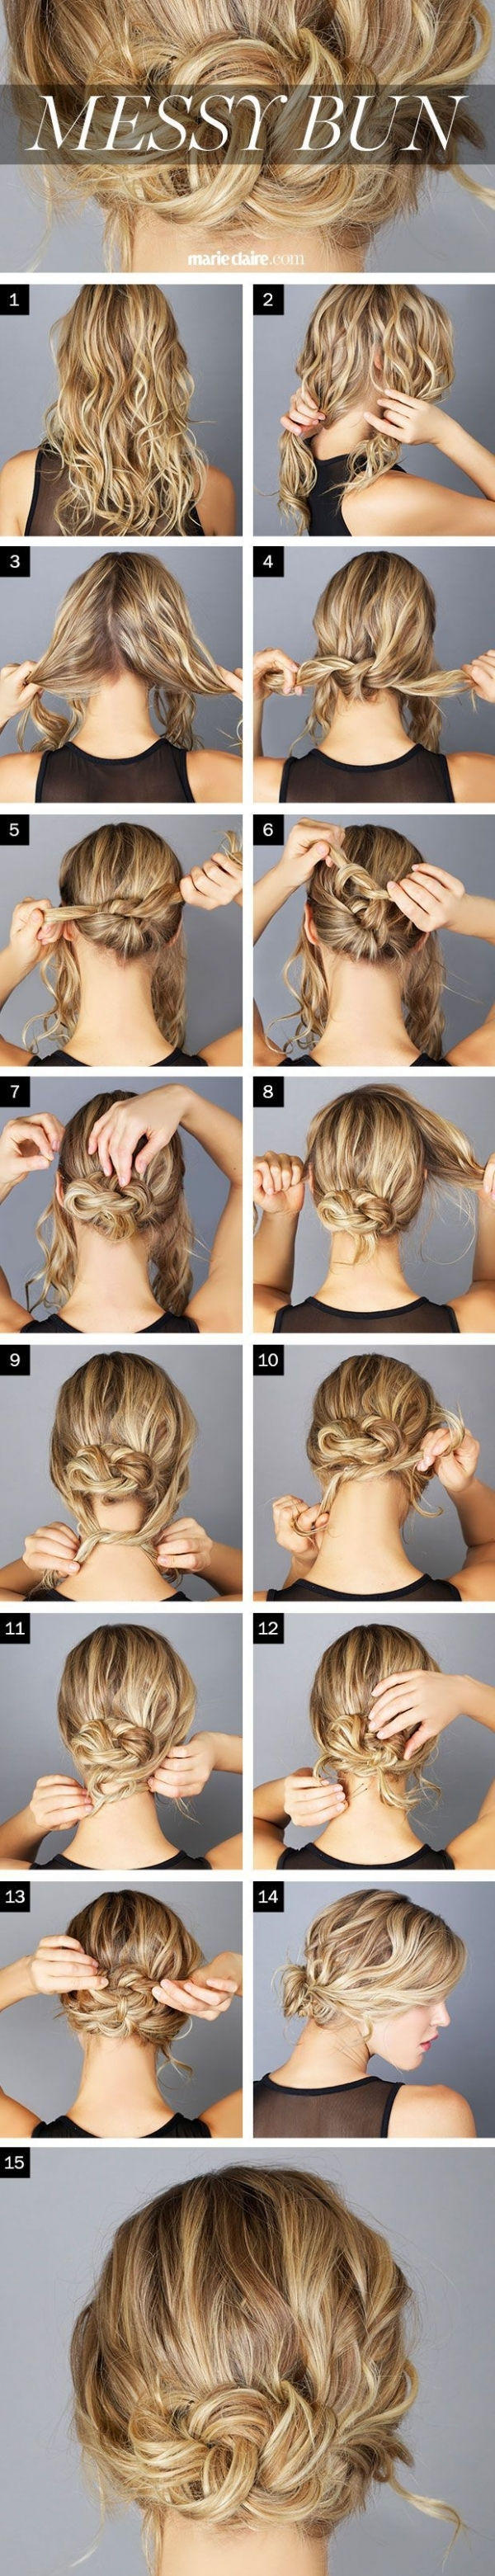 A Collection of 23 Super Chic Bun Hairstyle Tutorials